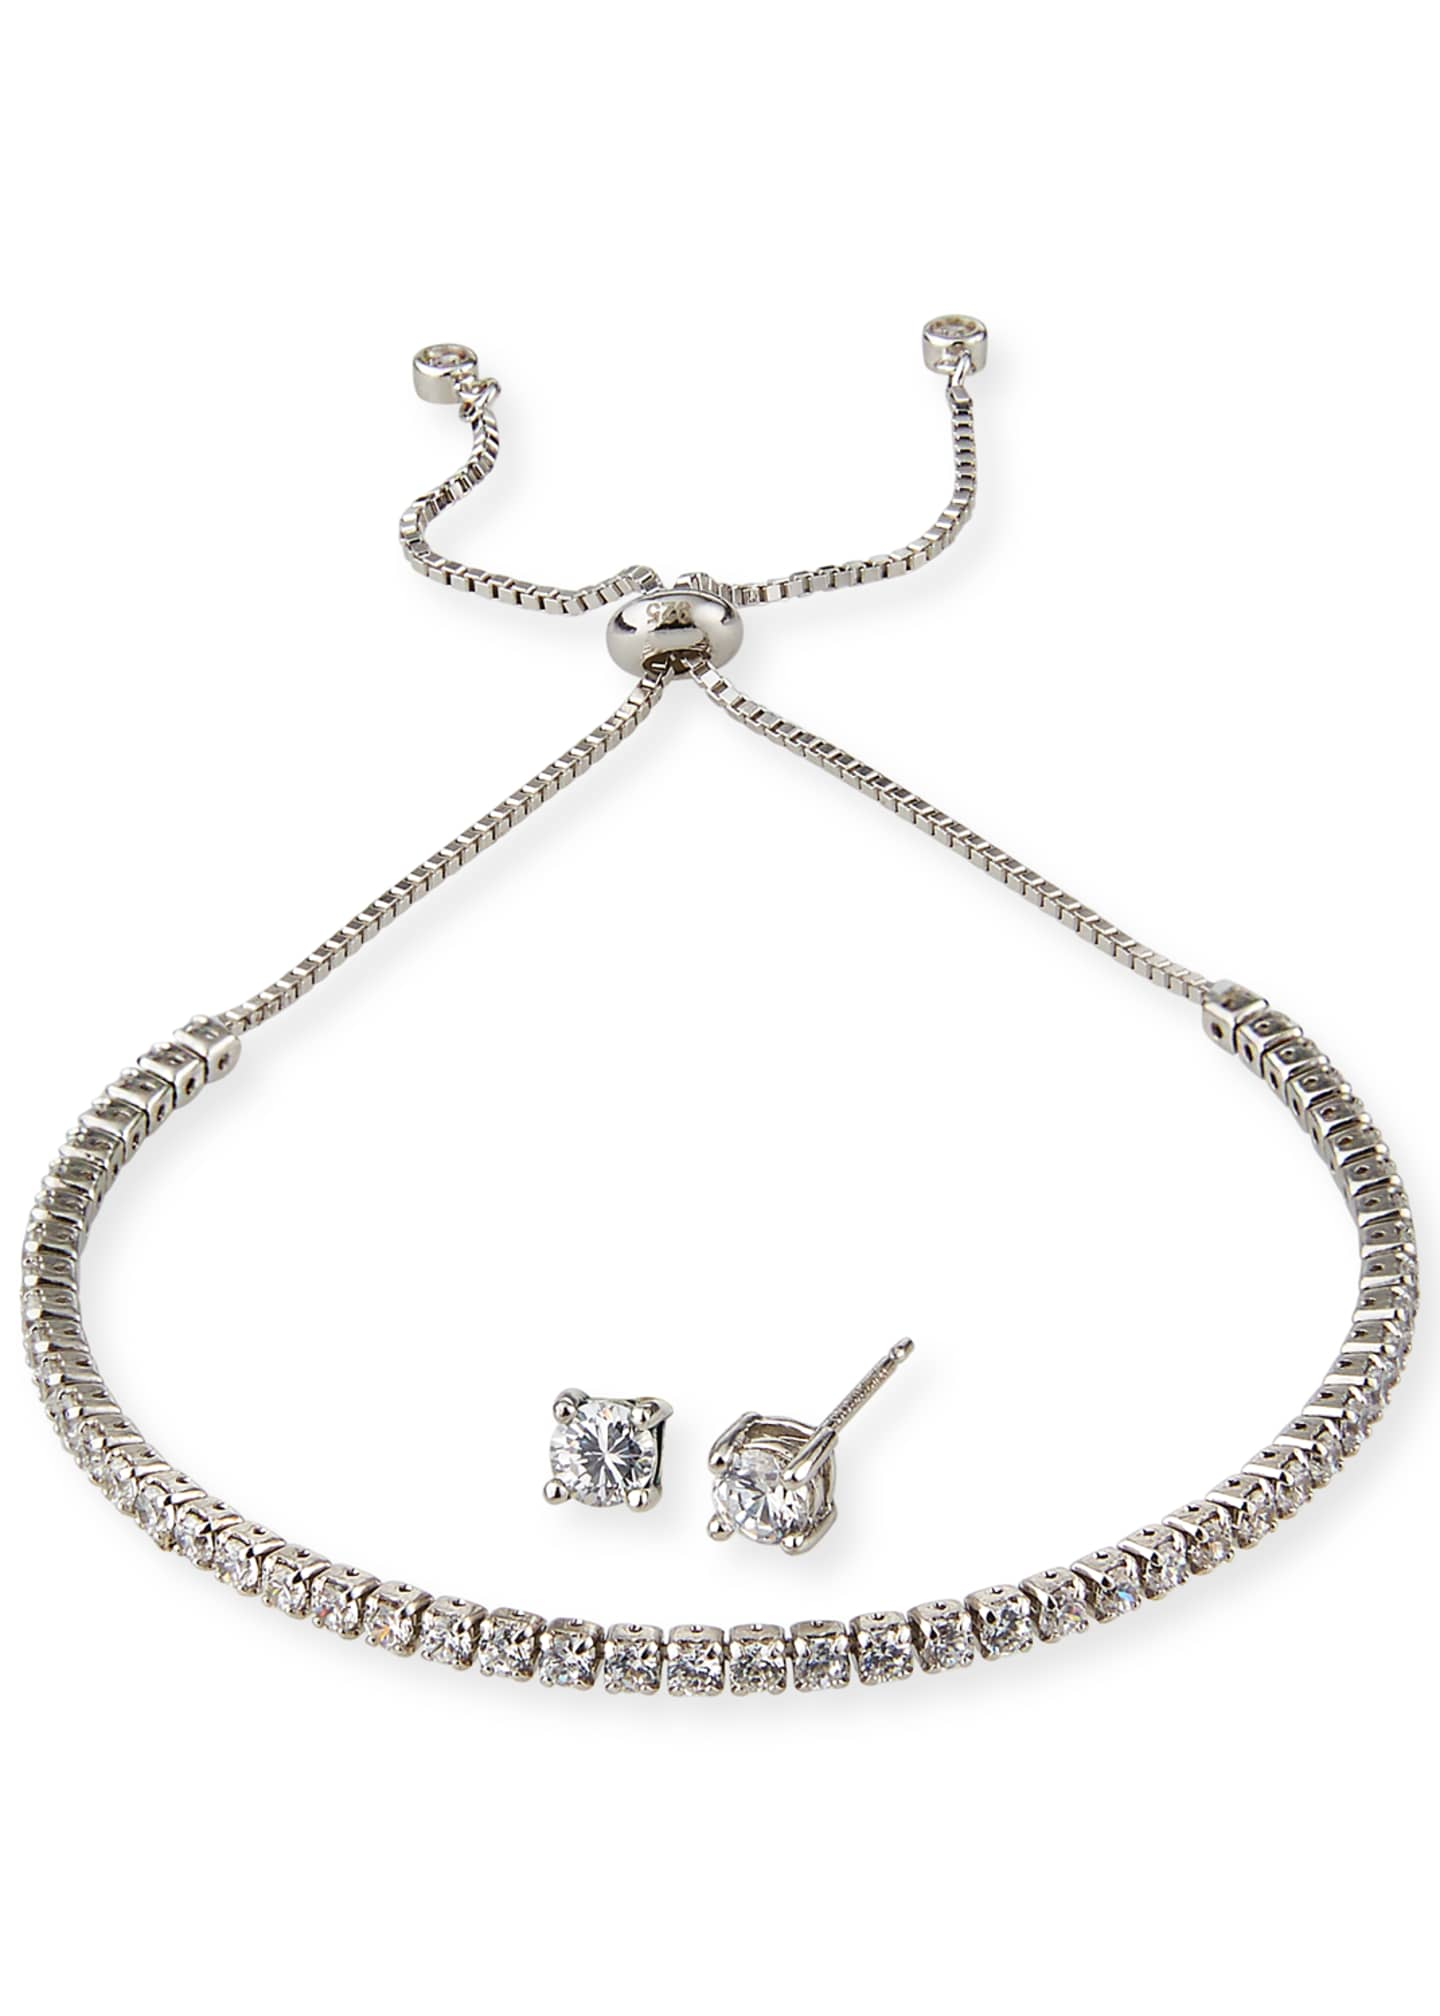 Image 1 of 2: Girl's Sterling Silver Cubic Zirconia Adjustable Bracelet w/ Matching Stud Earrings Set